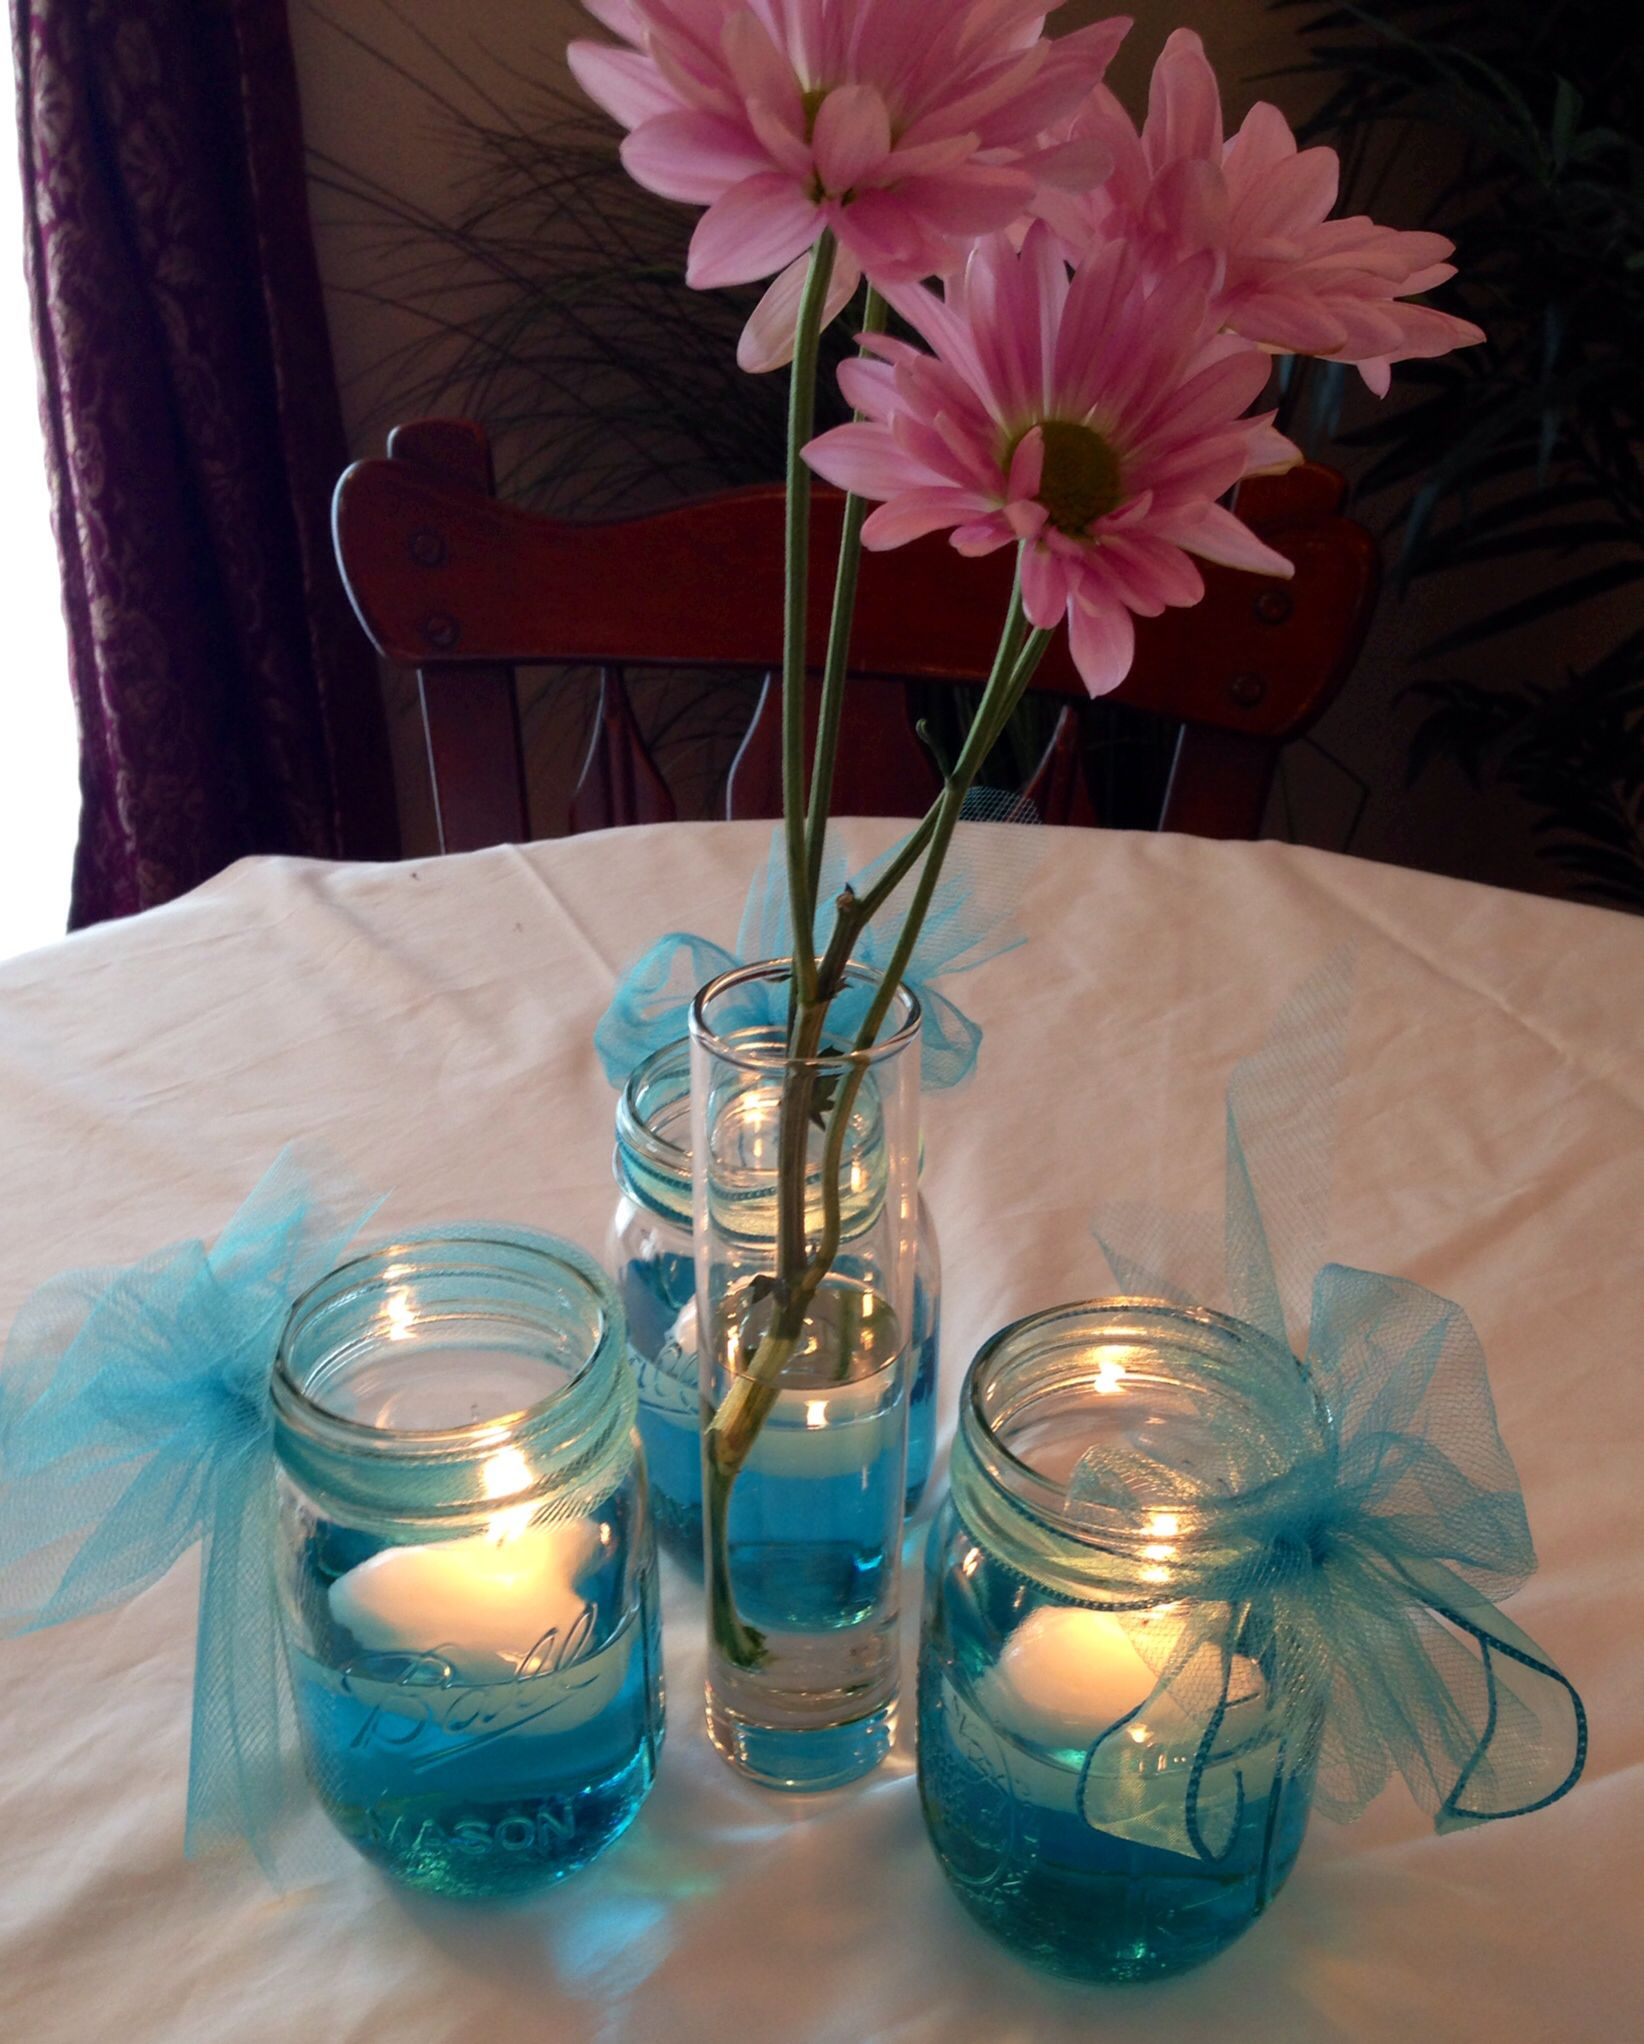 church wedding decorations candles%0A Wedding or baby shower table decorations  Mason jar with filled with water     drop food coloring  floating candle  u     ribbon  Bud vase with daisies